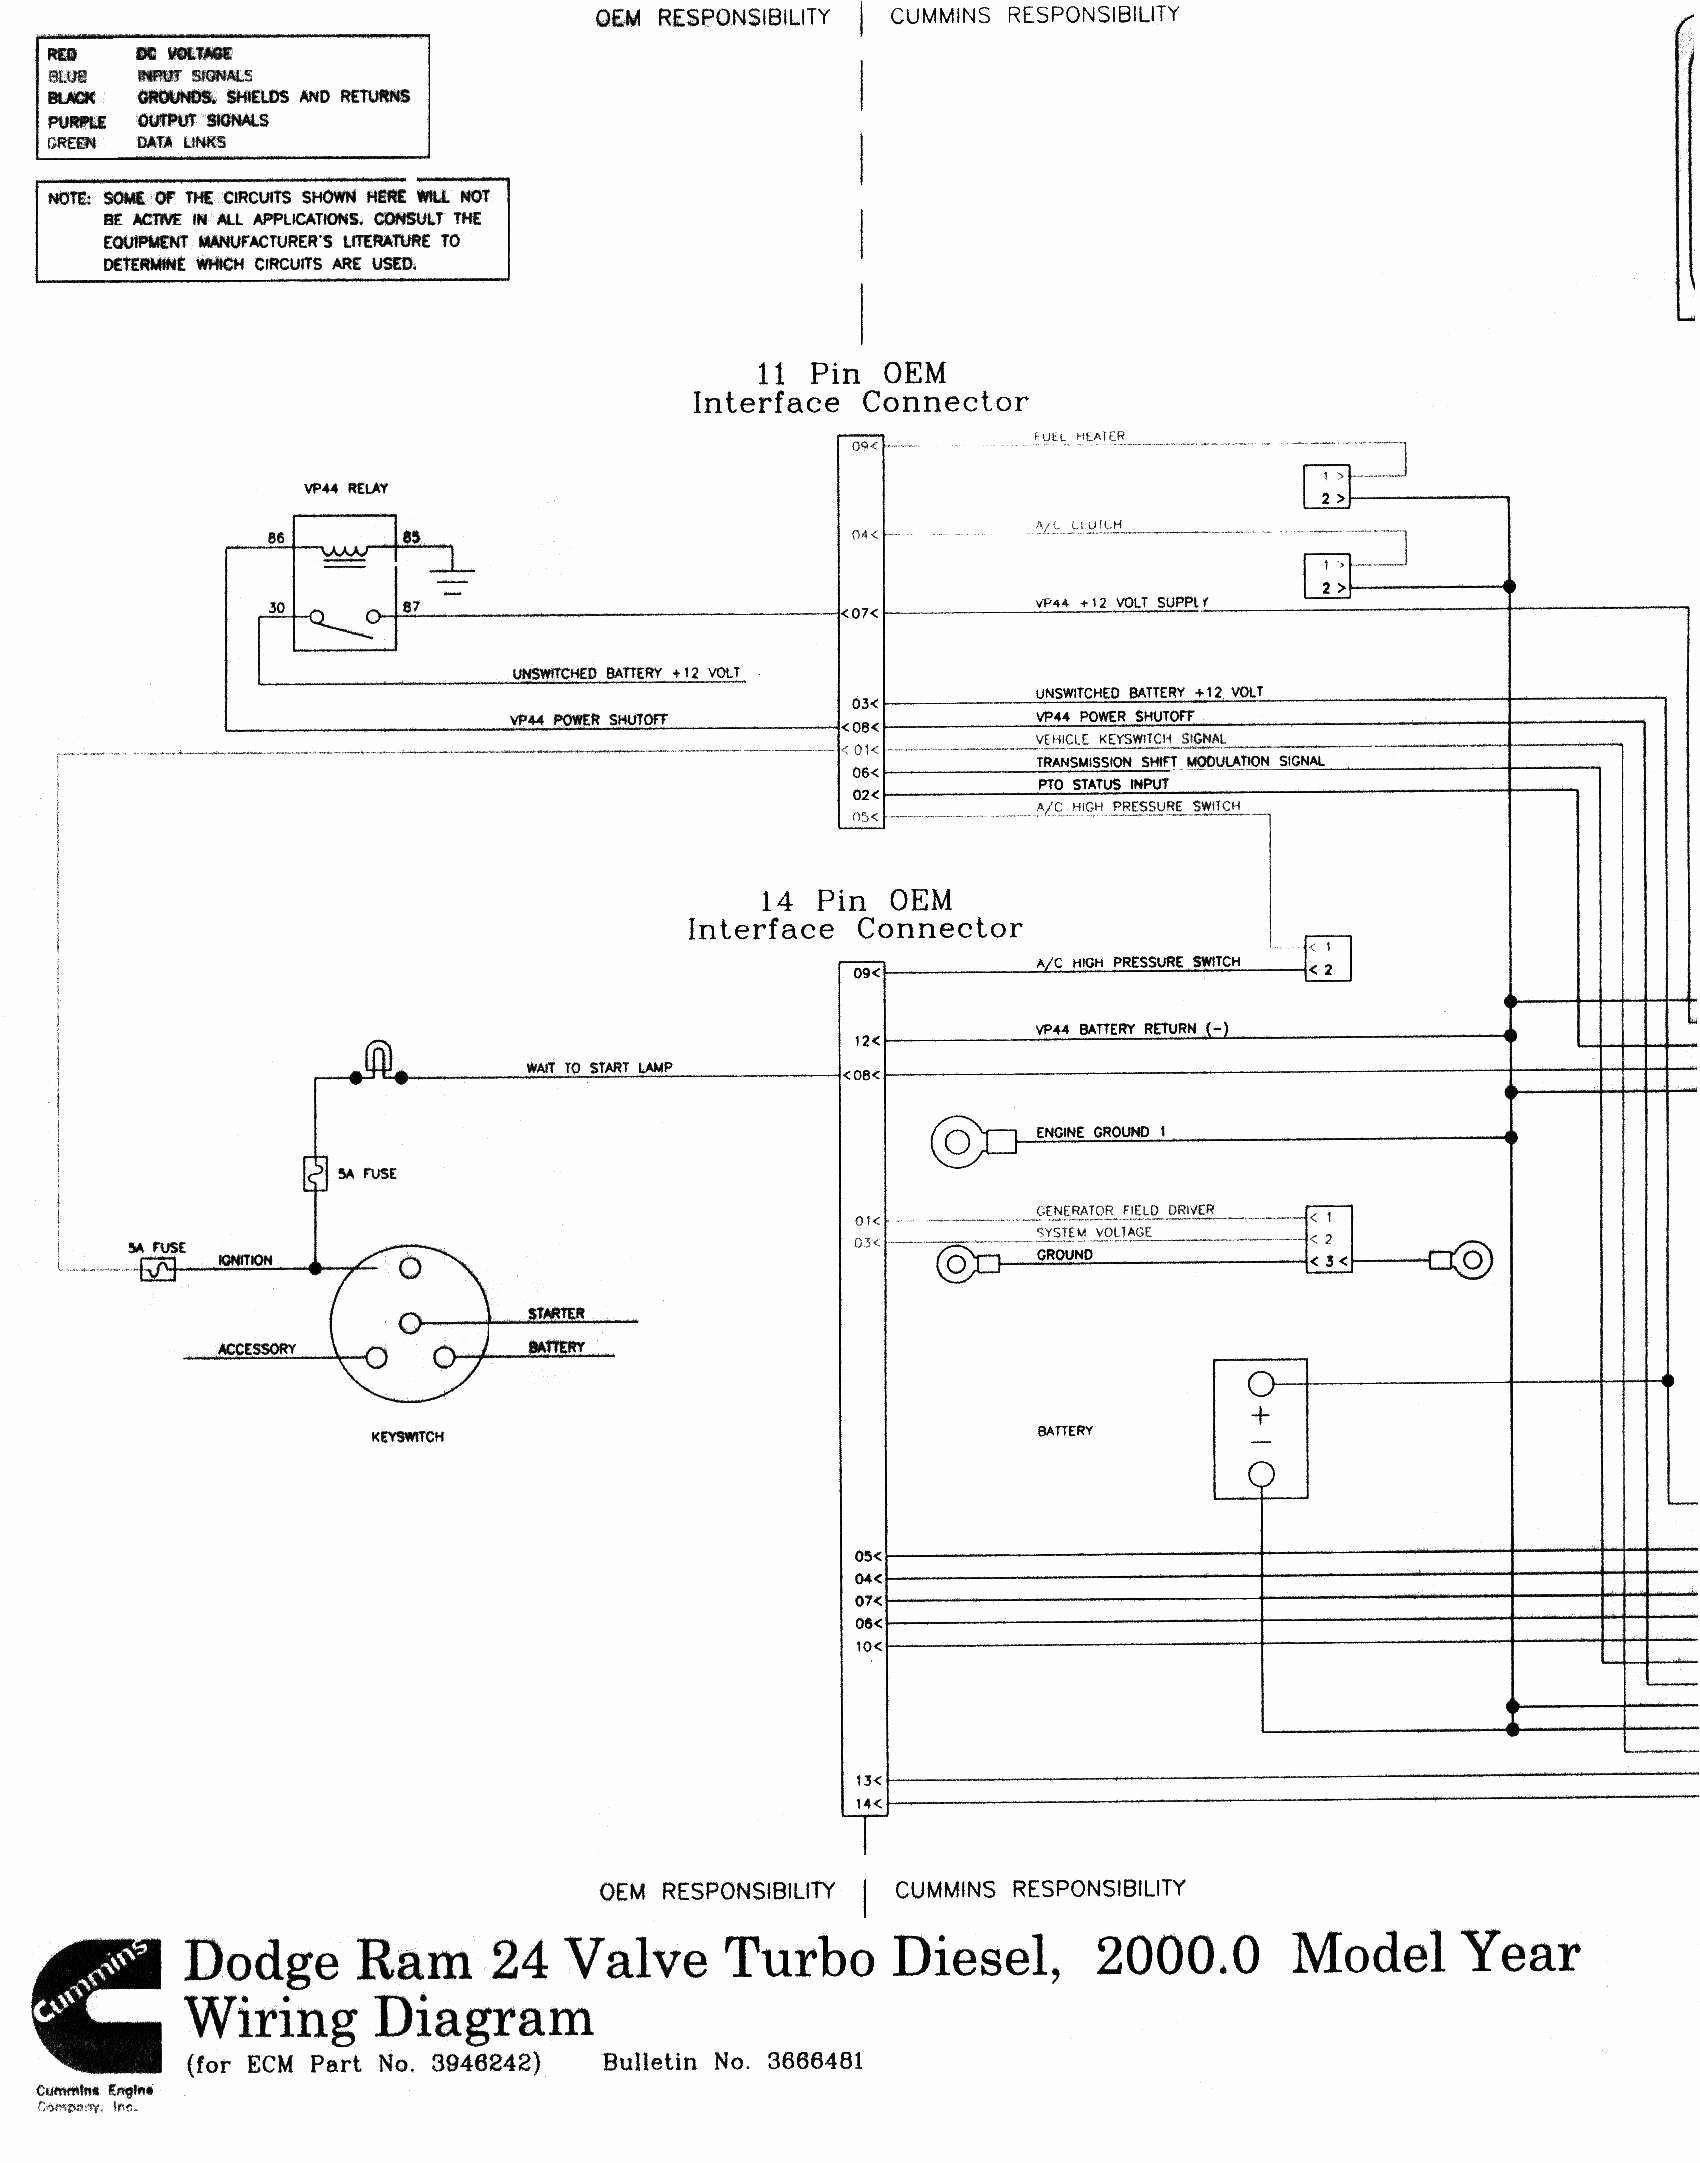 New Wiring Diagram for 2014 Dodge Ram 1500 #diagram #diagramsample  #diagramtemplate #wiringdiagram #diagramchart #worksheet #w… | Dodge trucks  ram, Dodge, Dodge ramPinterest